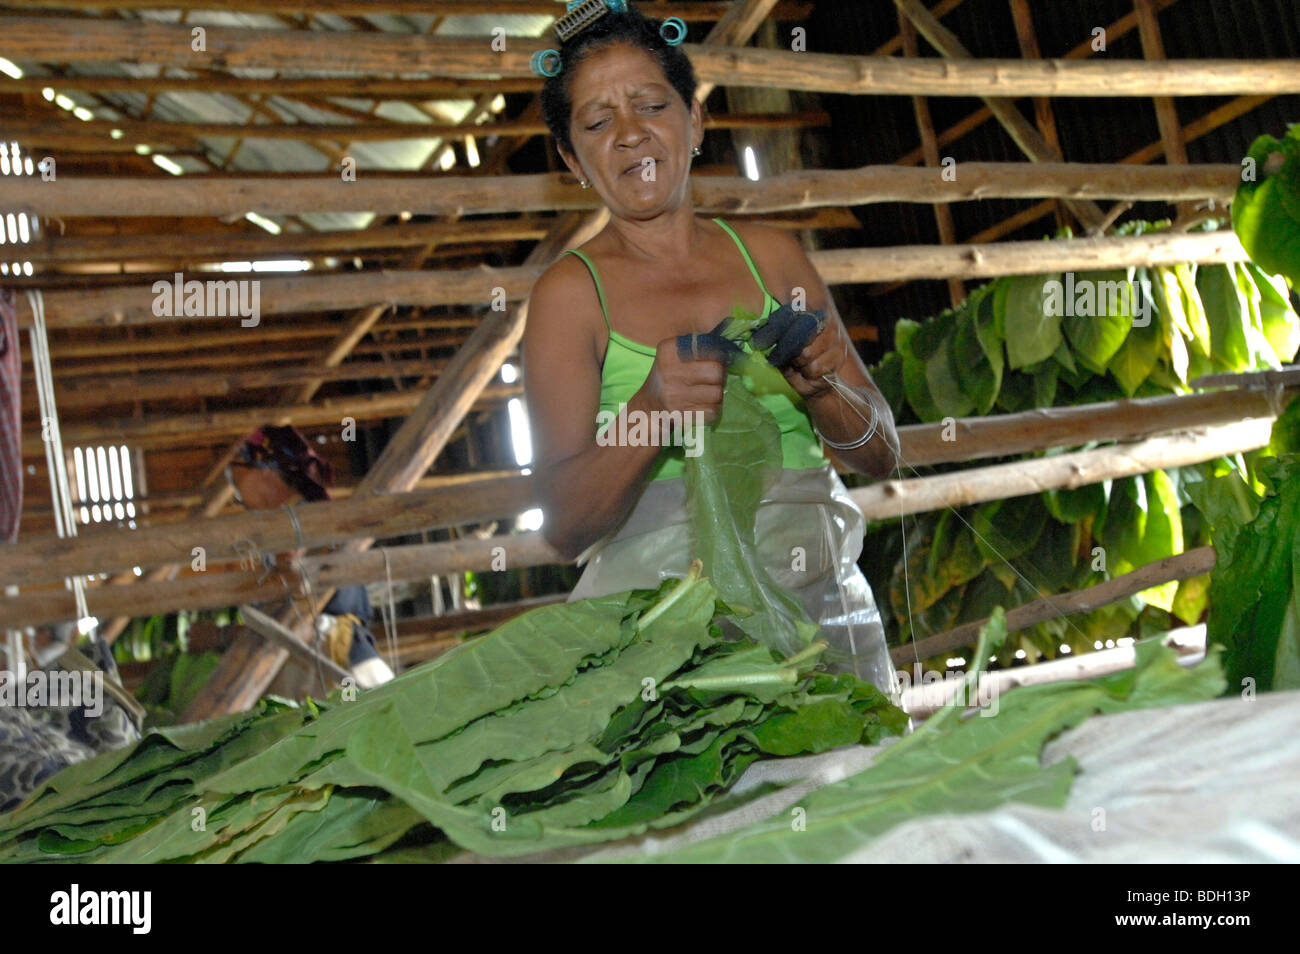 Hanging tobacco leaves to dry for Pinar del Rio cigars, Cuba. - Stock Image